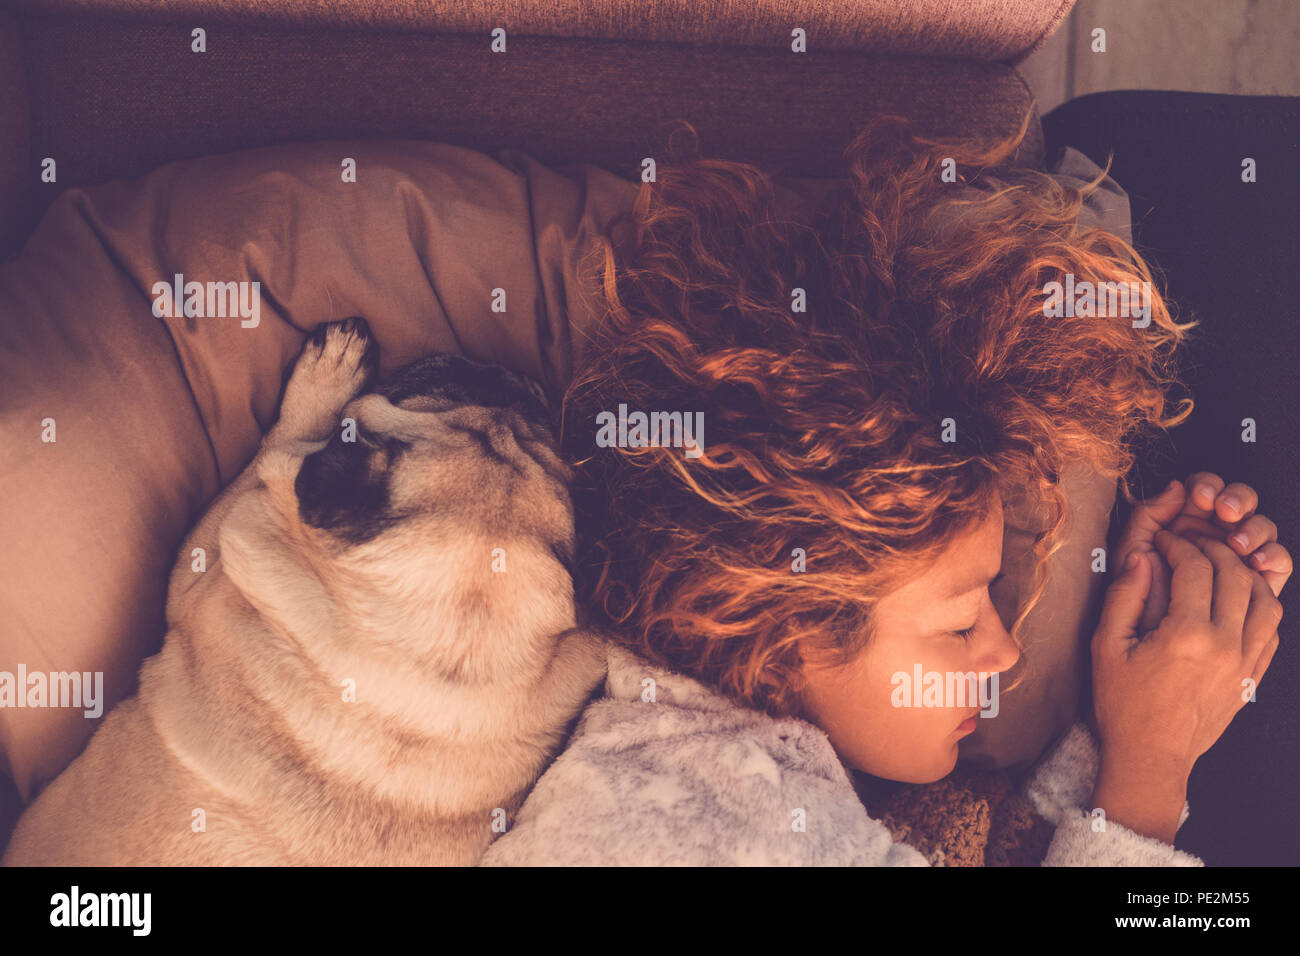 friendship concepts for 40s woman sleeping with her best firends pug dog at home. Both on the pillow and brown warm tones. Dreaming together. Love and - Stock Image